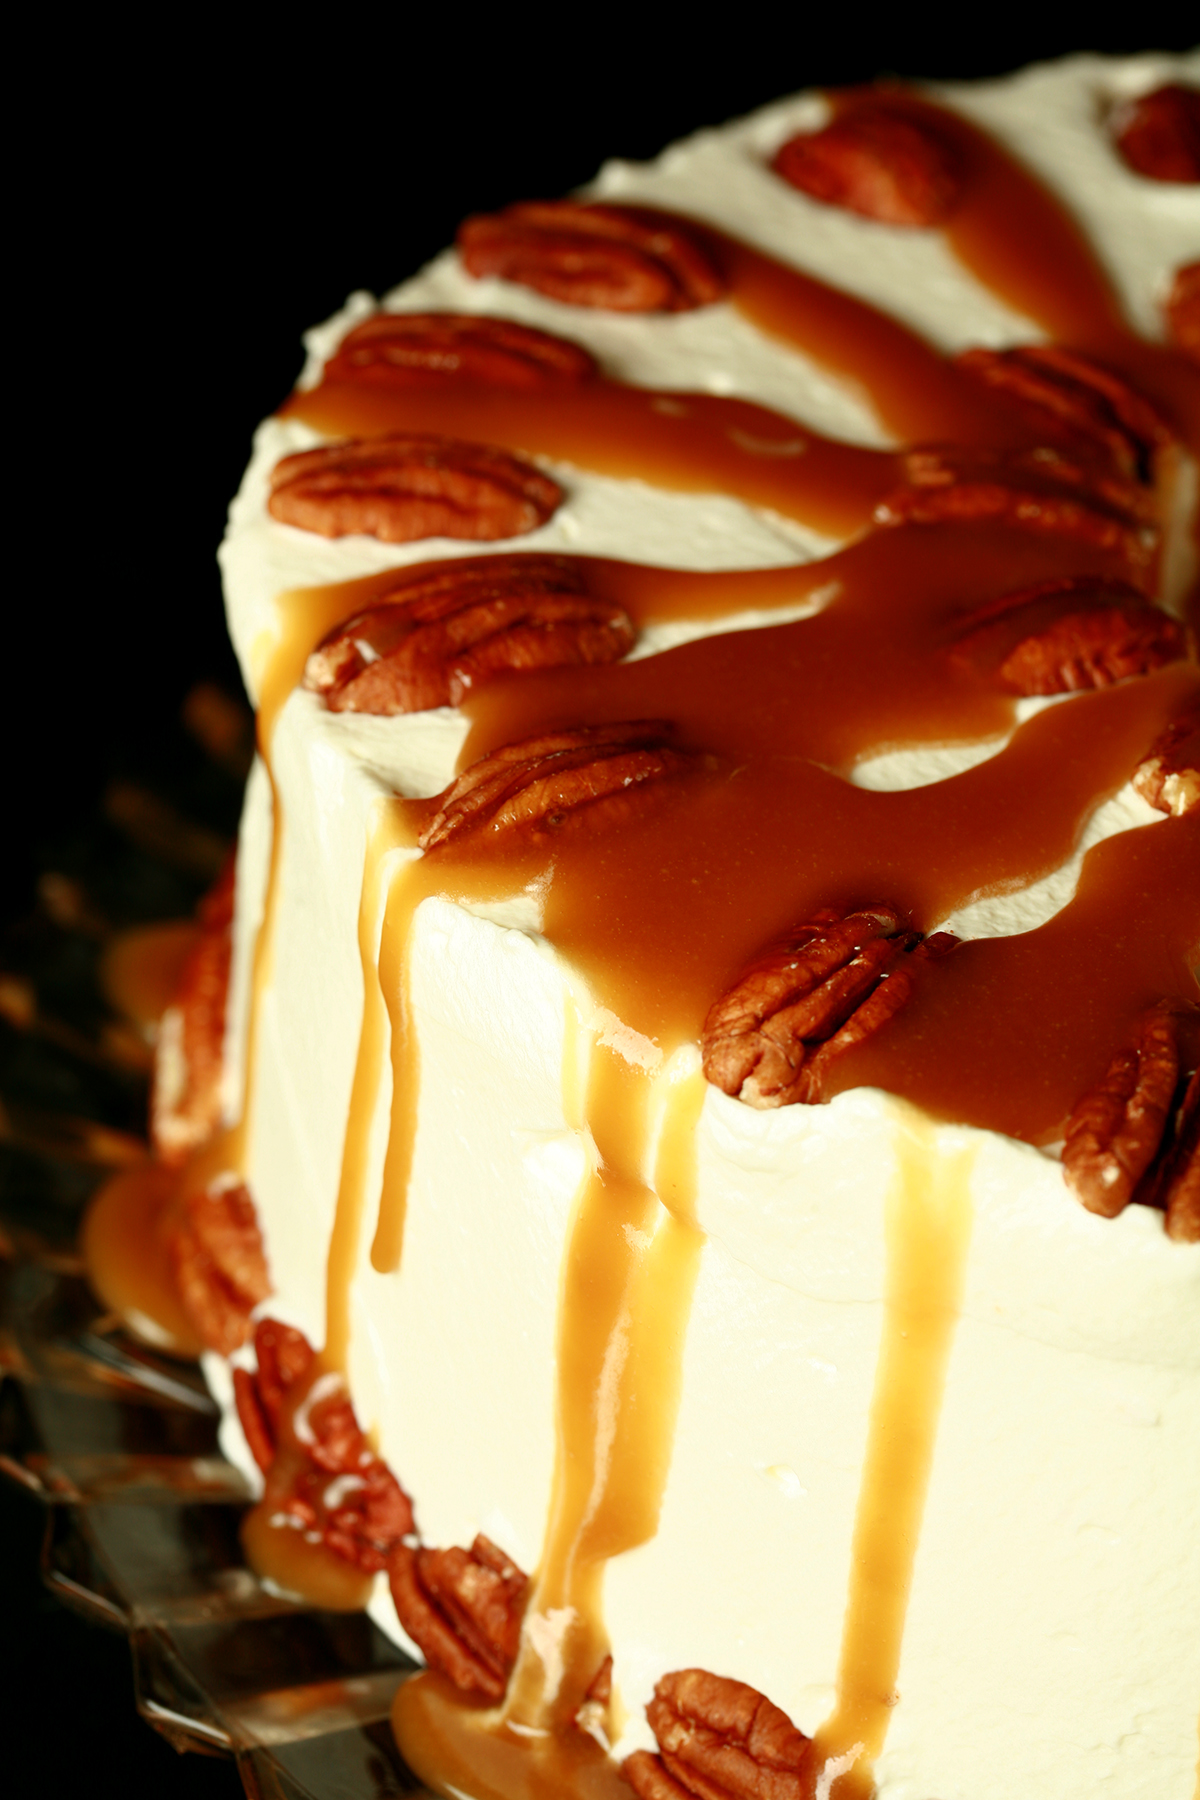 A close up view of a schmoo torte - layers of pecan angel food cake and whipped cream, topped with pecans and with caramel sauce drizzled all over it!